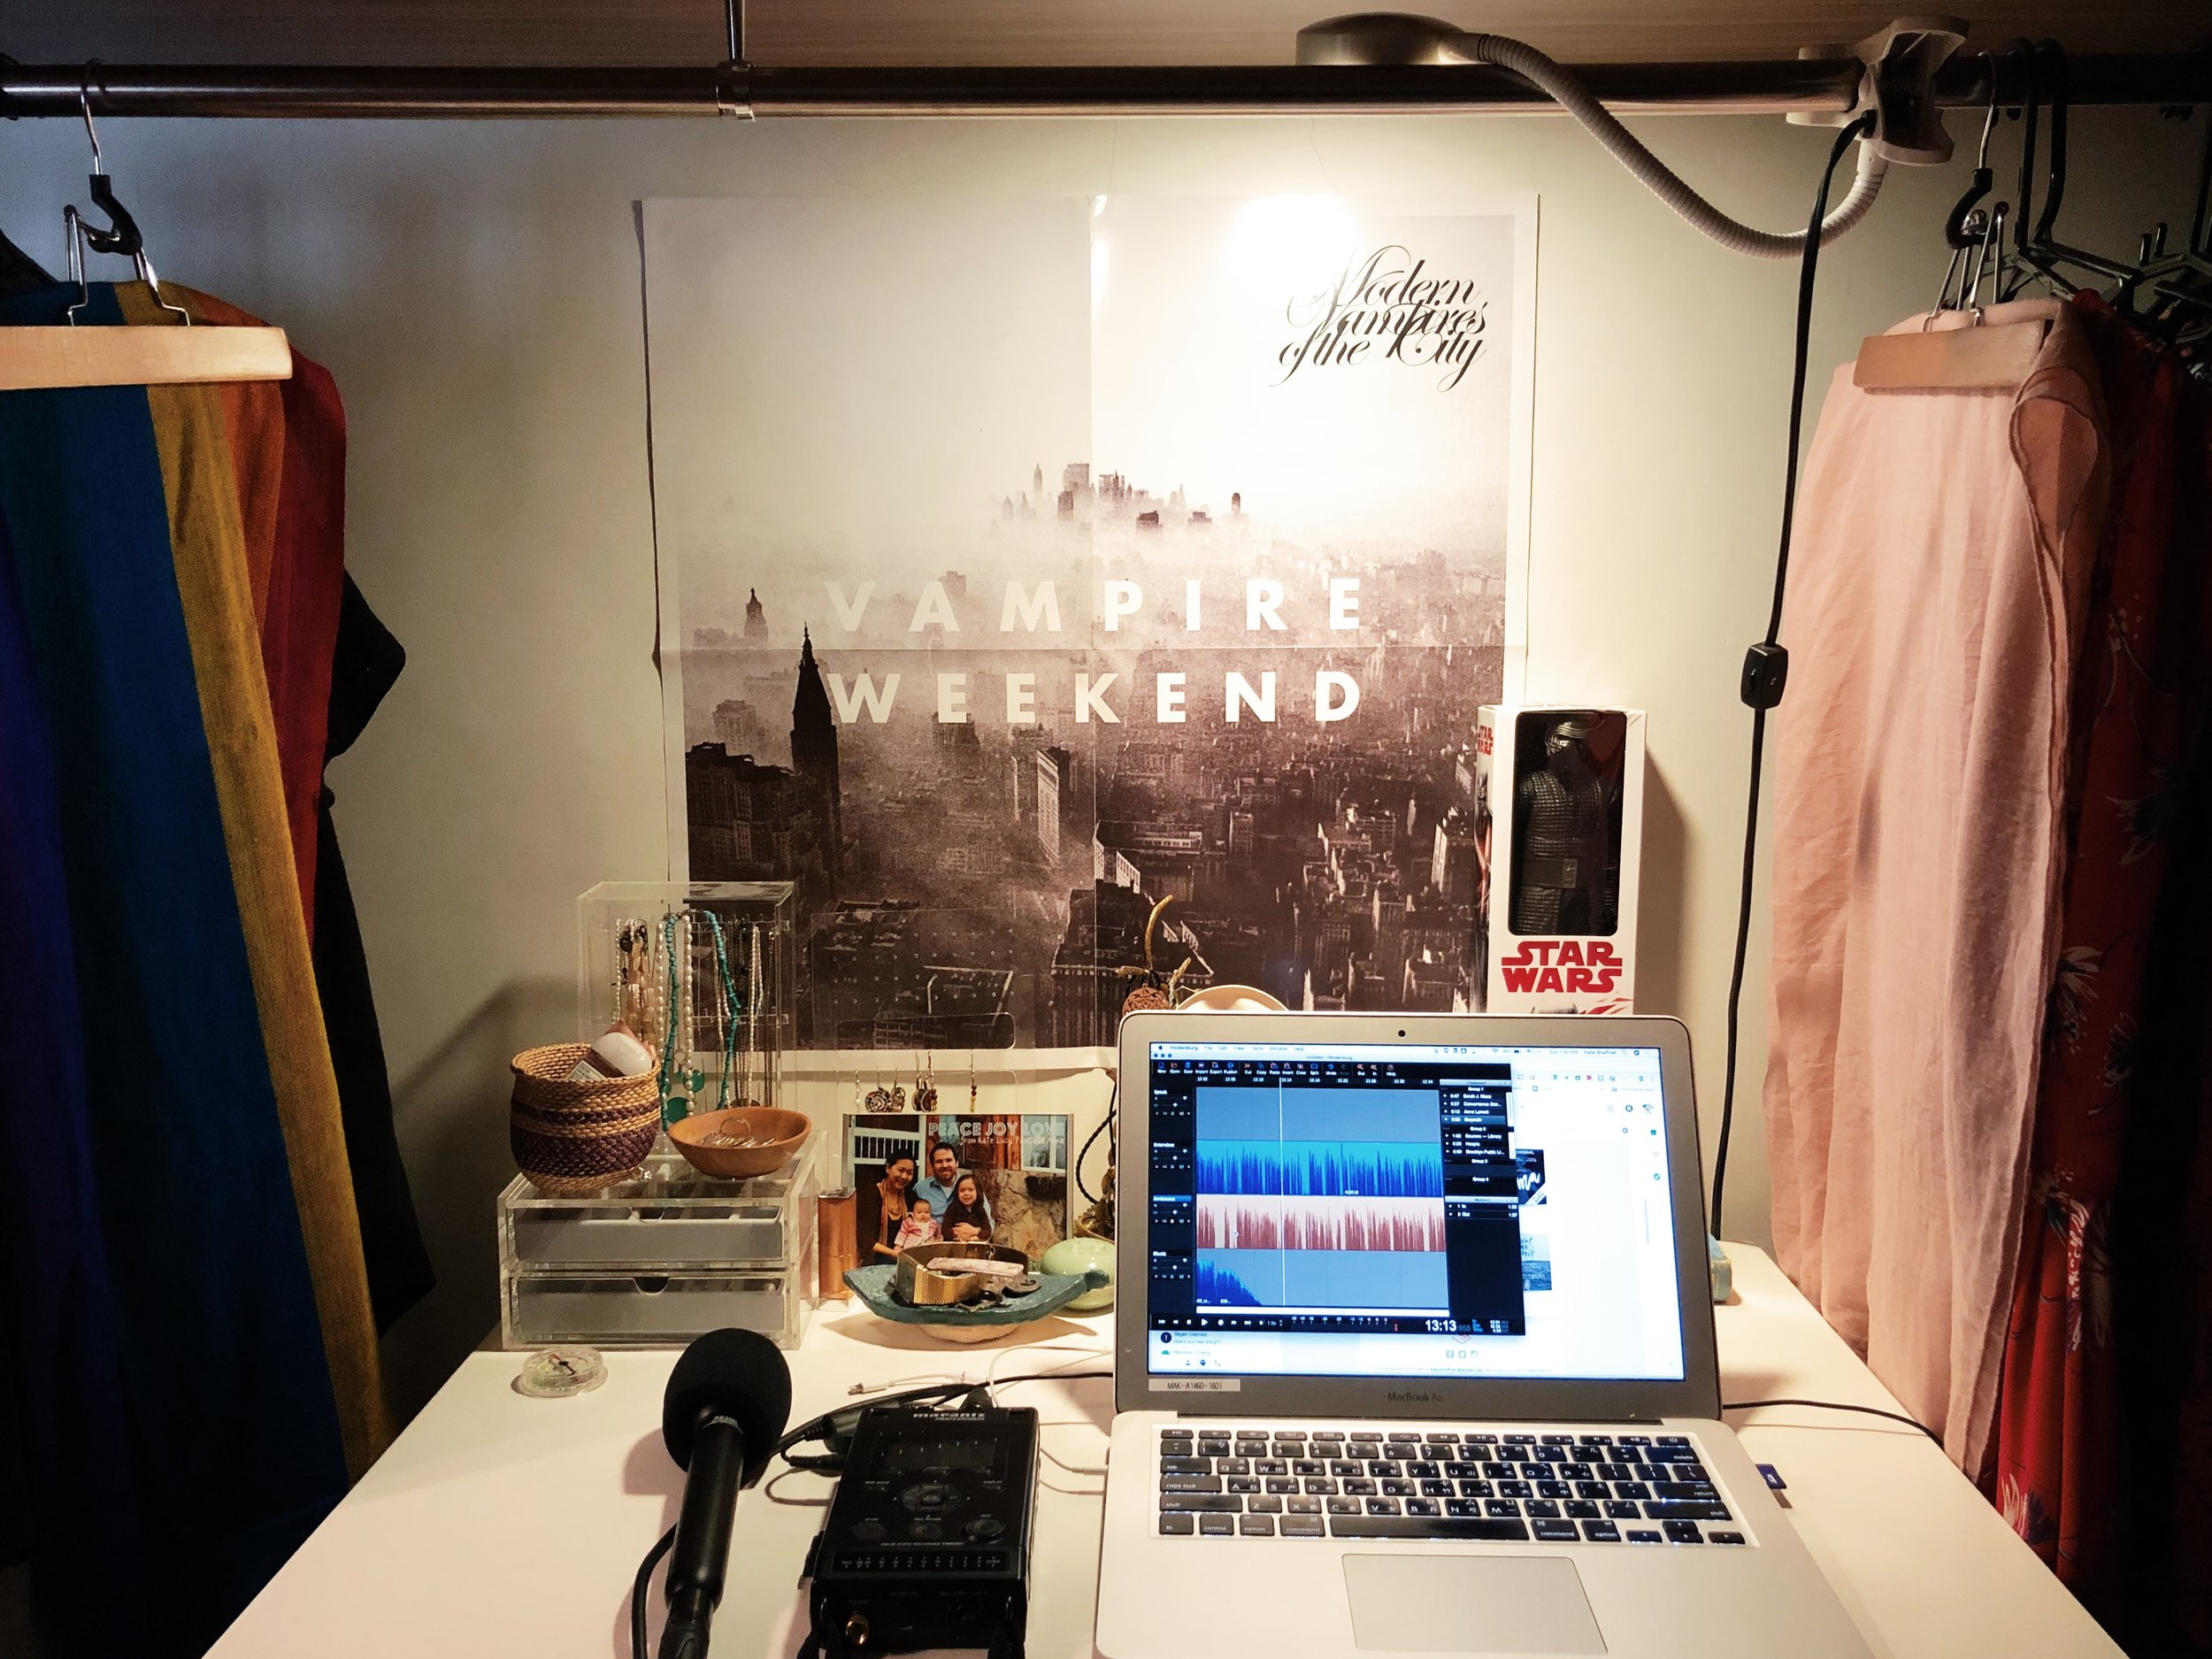 Like how I hung scarves on each side of my workspace so I don't have shirts and dresses in my face? Also: once again, Mom, Vampire Weekend is a band. :)